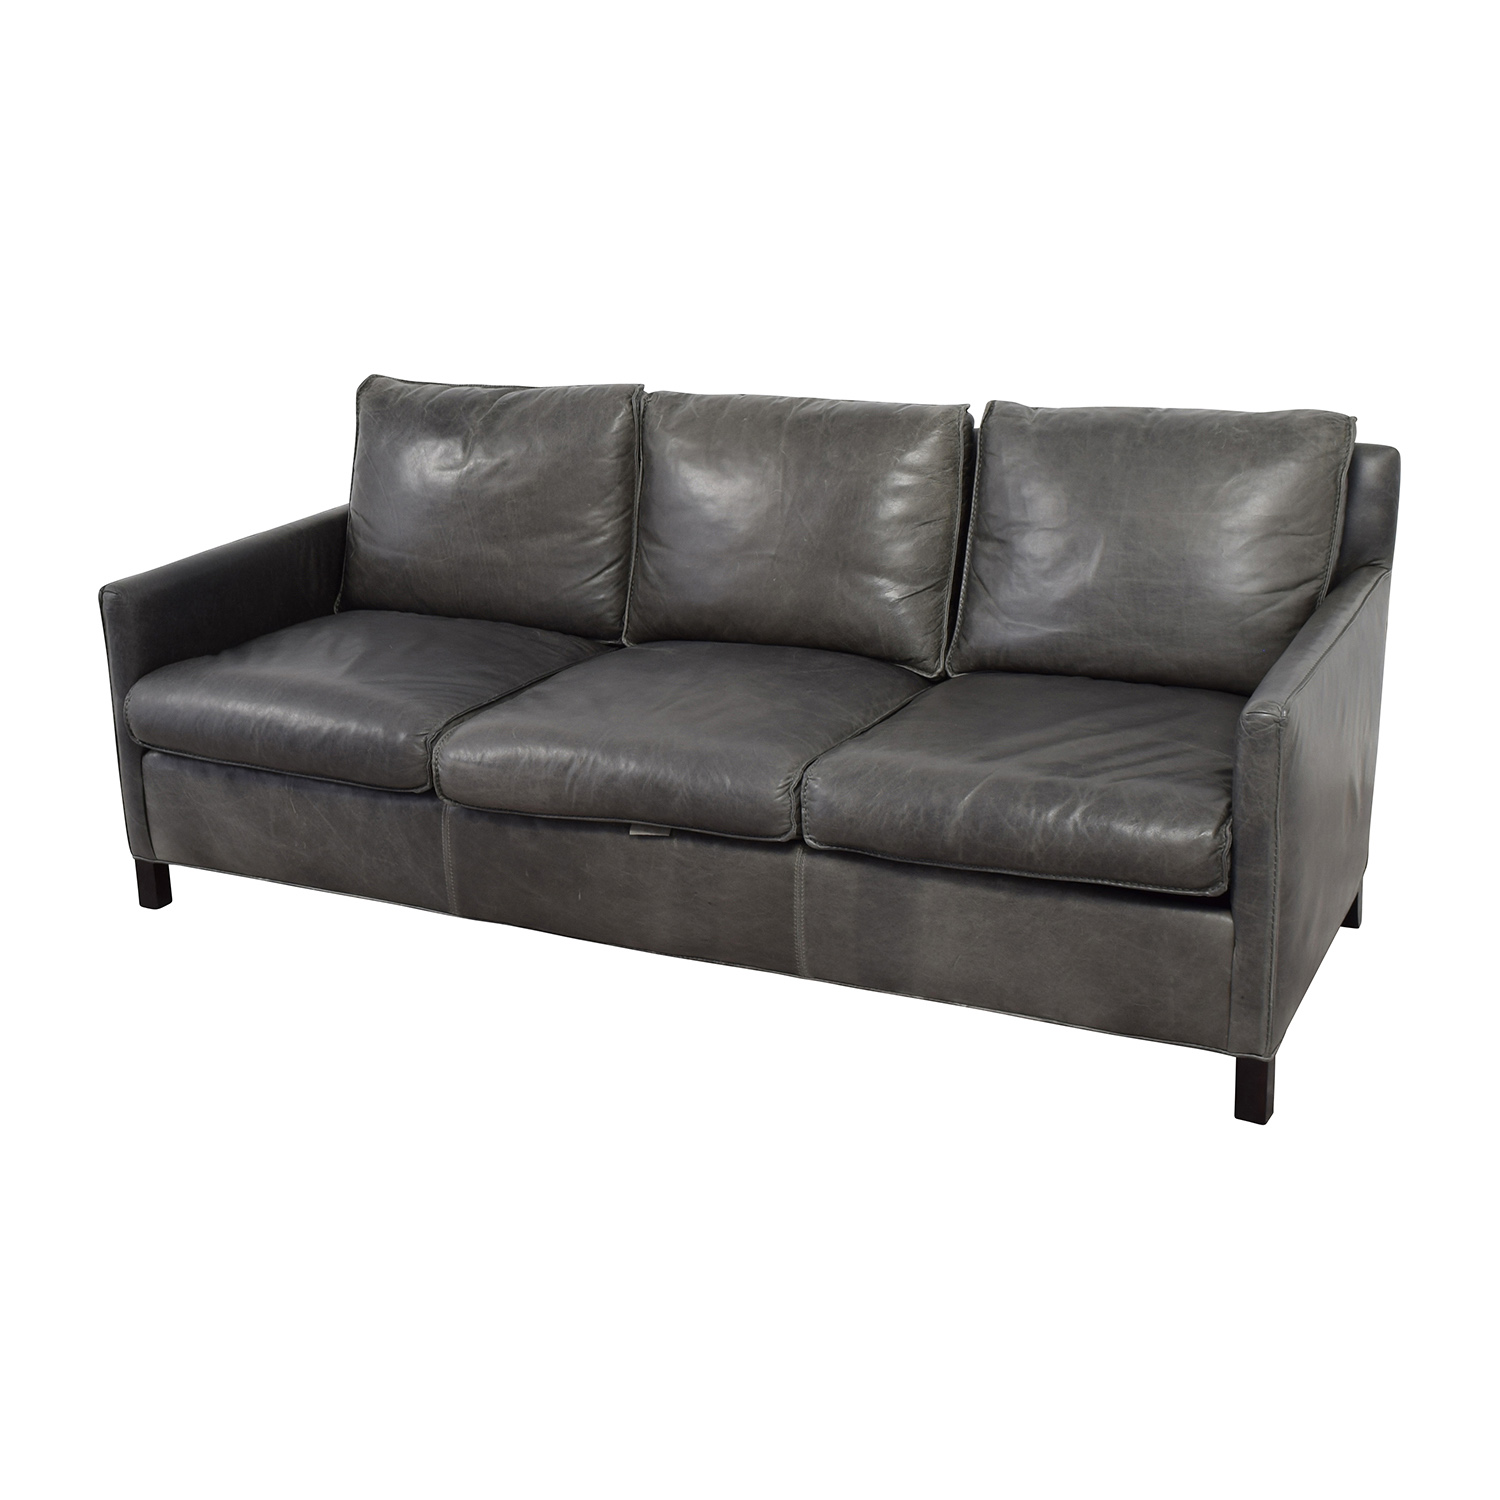 room and board leather sofa bed diy murphy 62 off bram sofas